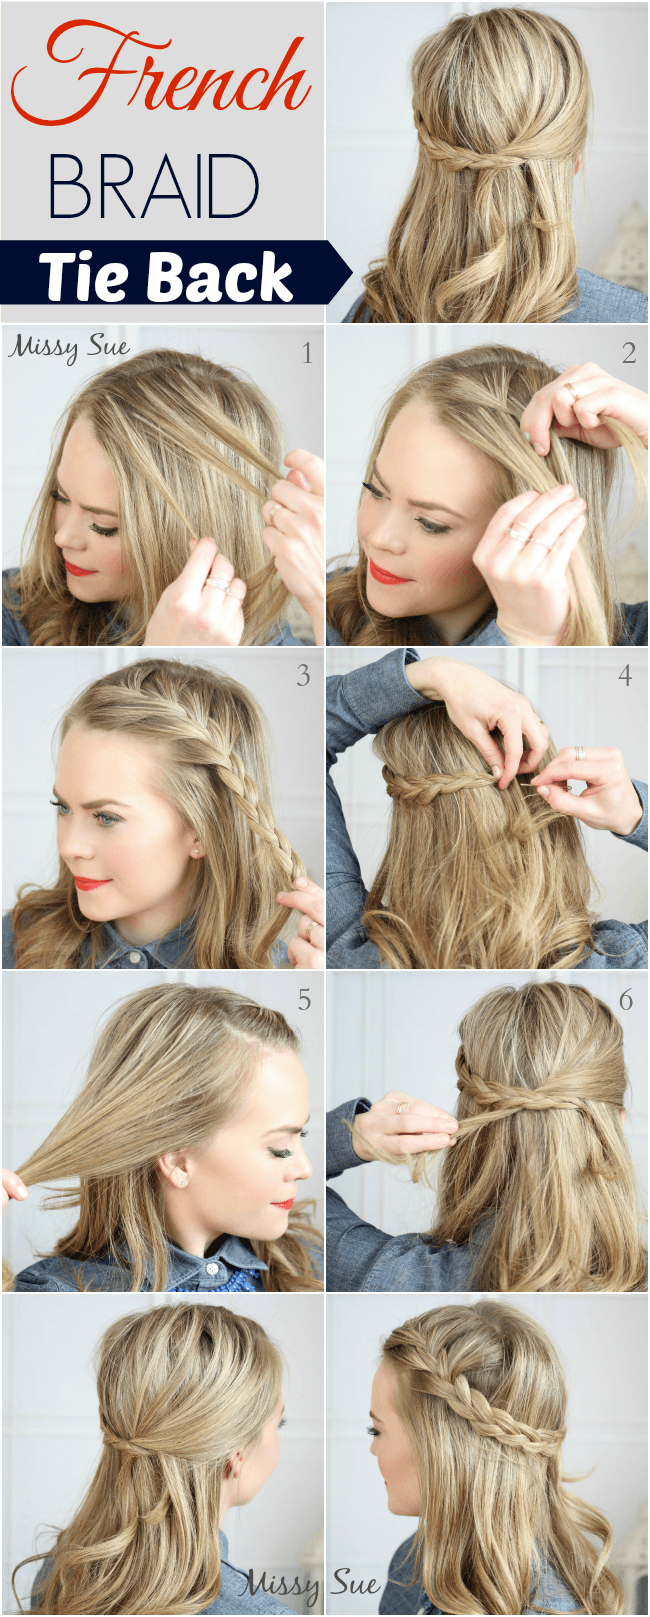 Stupendous Braid 17 French Braid Tie Back Short Hairstyles Gunalazisus